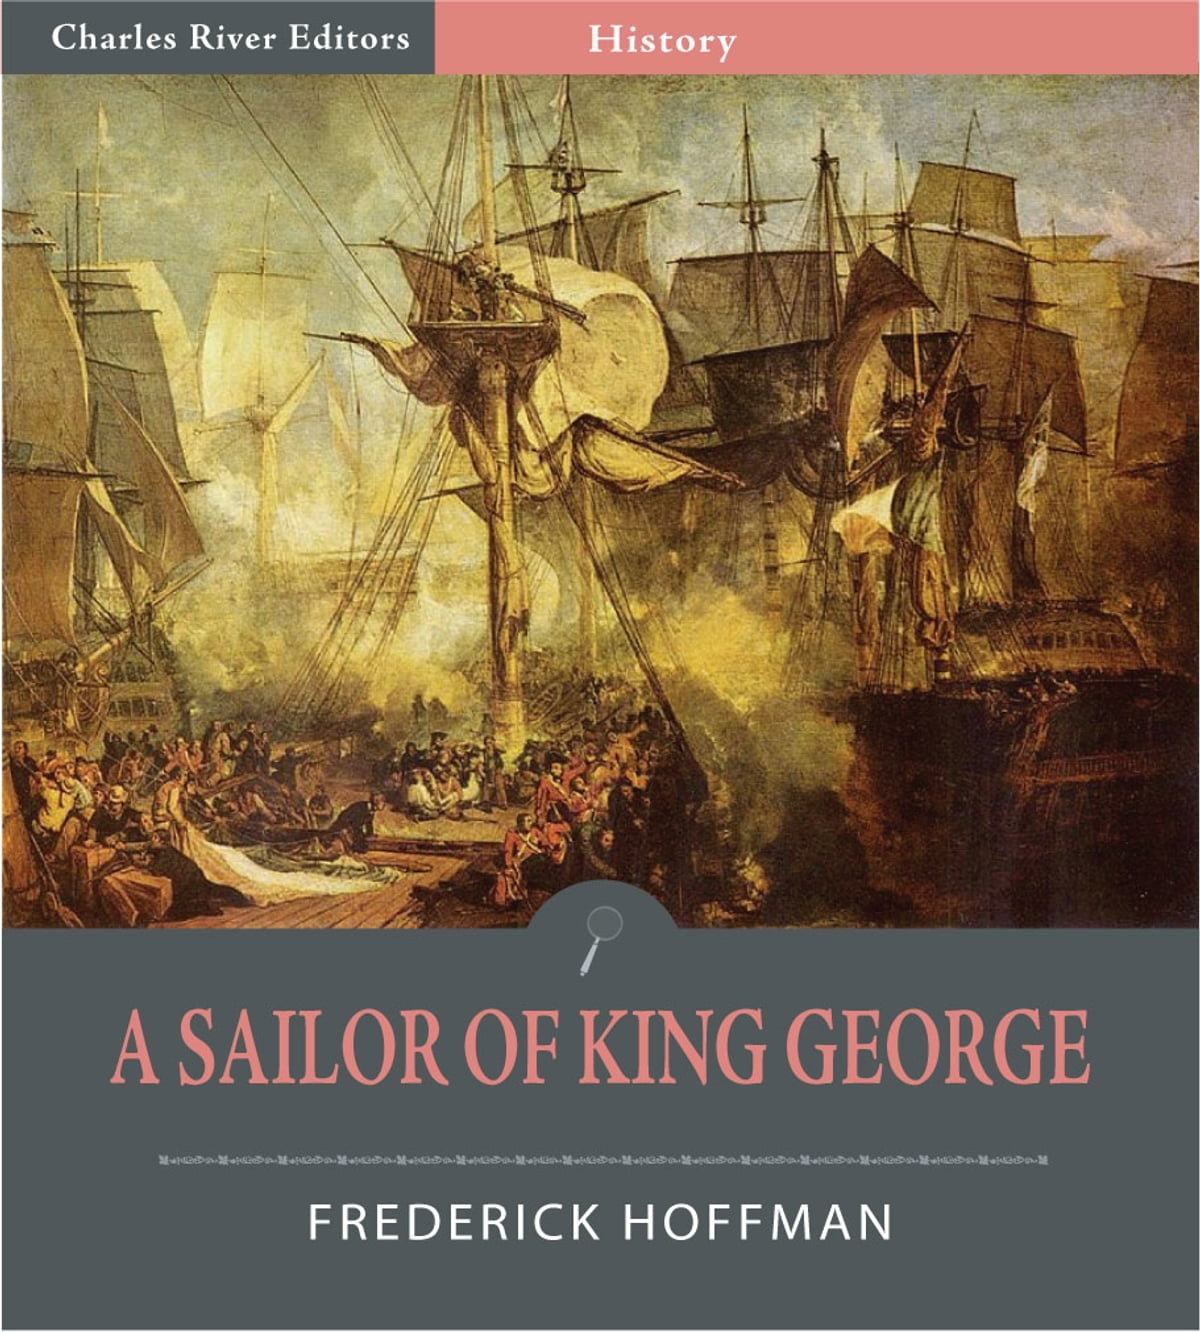 the story of king george the